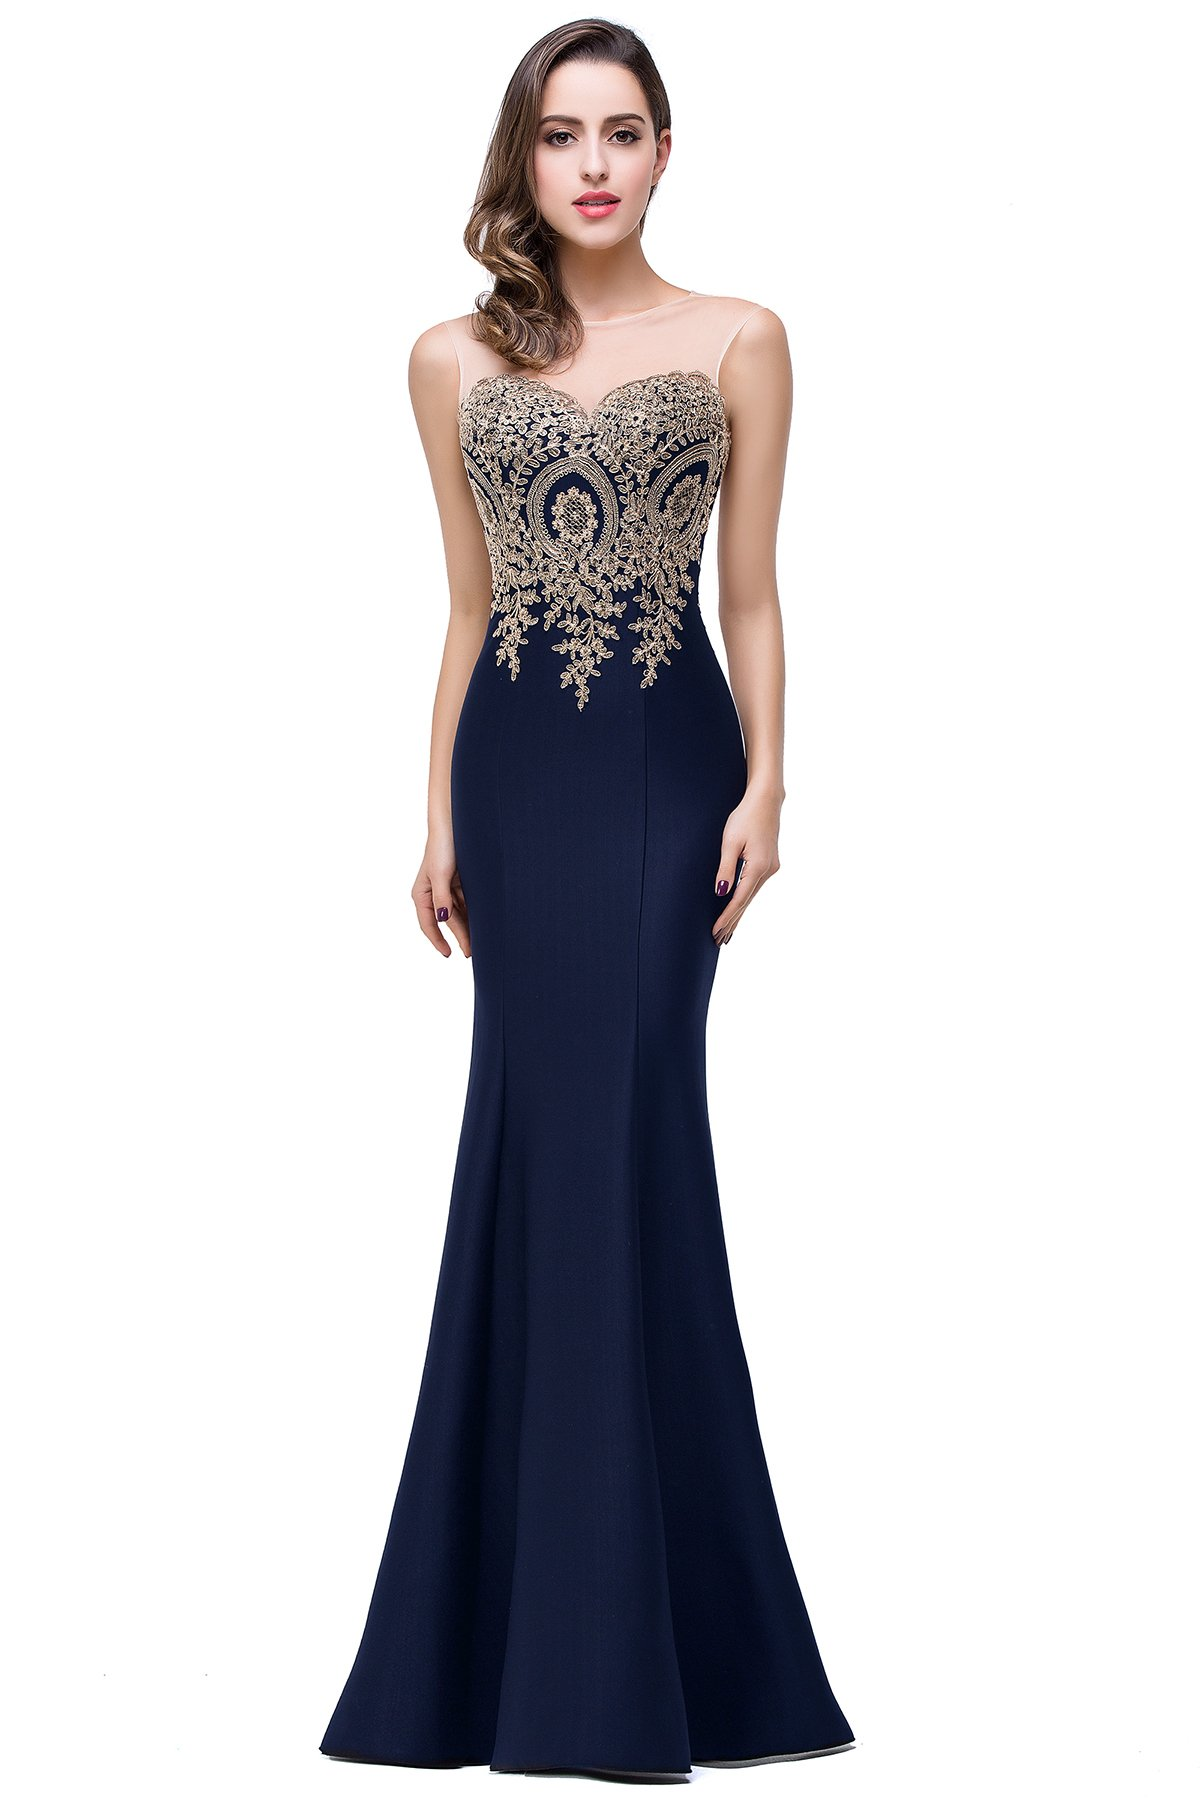 d0ed9fea8437 Galleon - Elegant Mermaid Style Floral Lace Stretch Long Evening Prom Party  Dress, 6, Navy